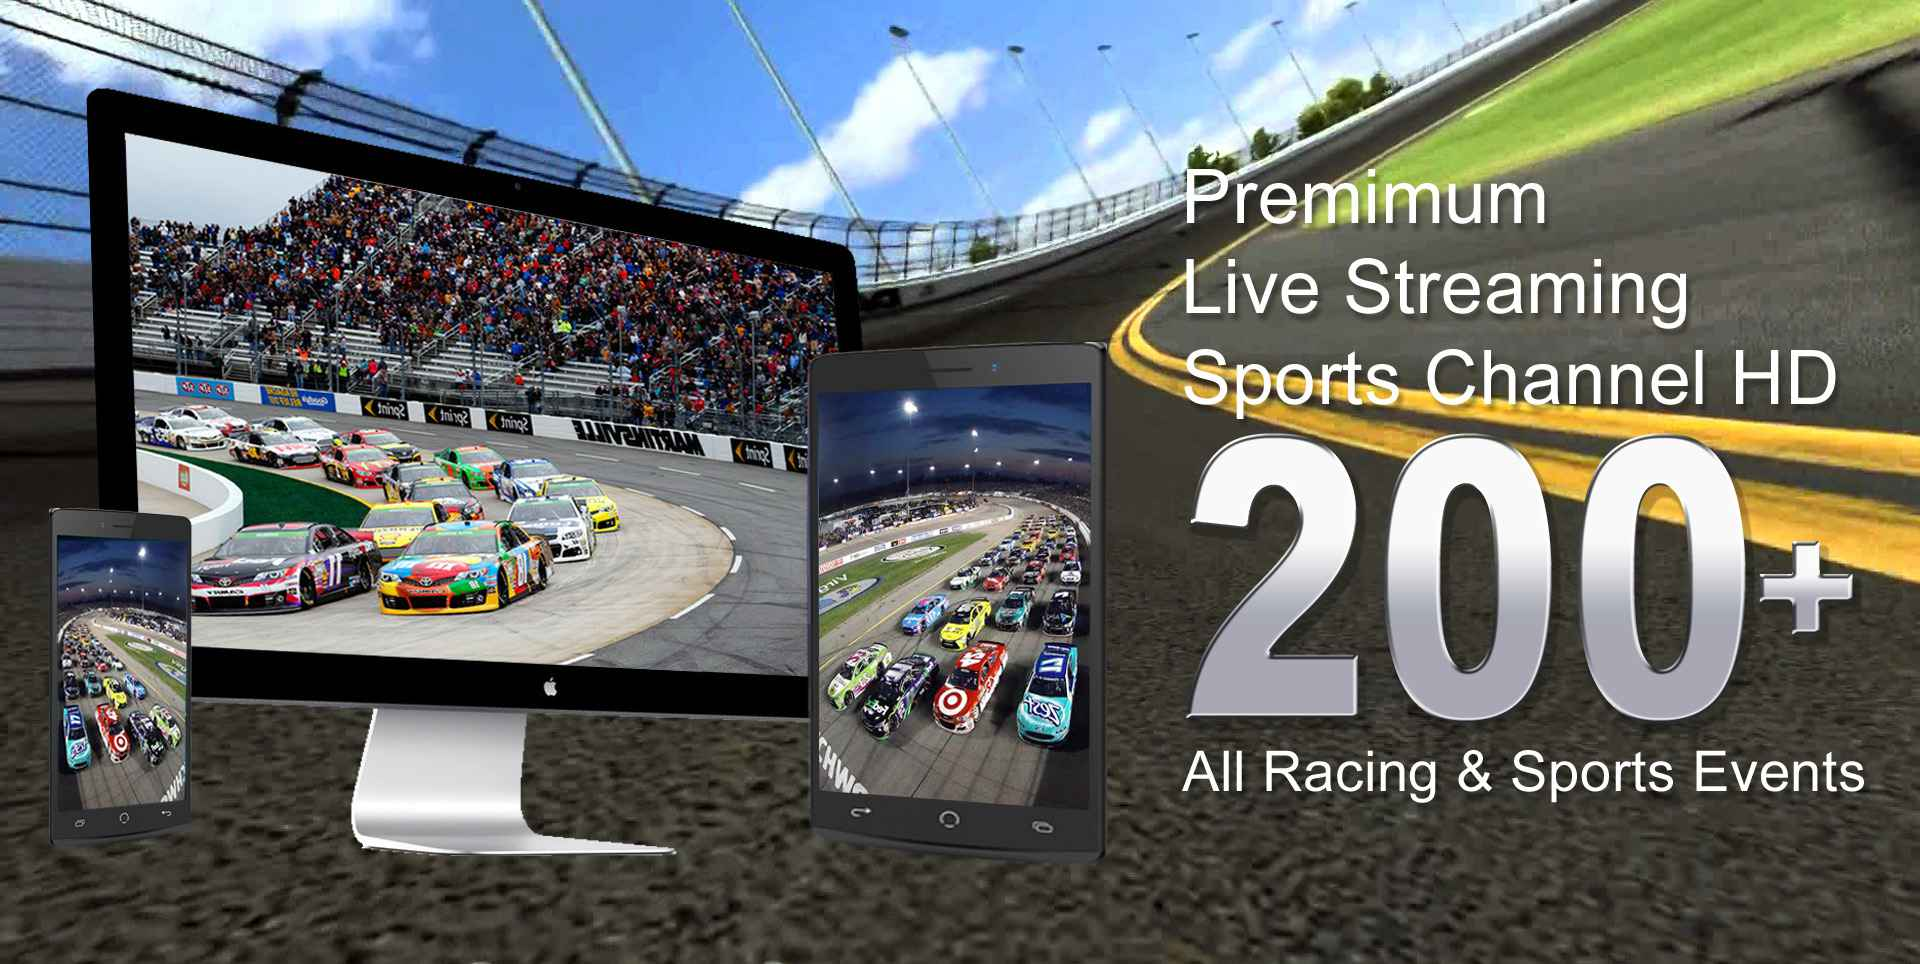 2016 Freds 250 NSACAR Truck Series Live